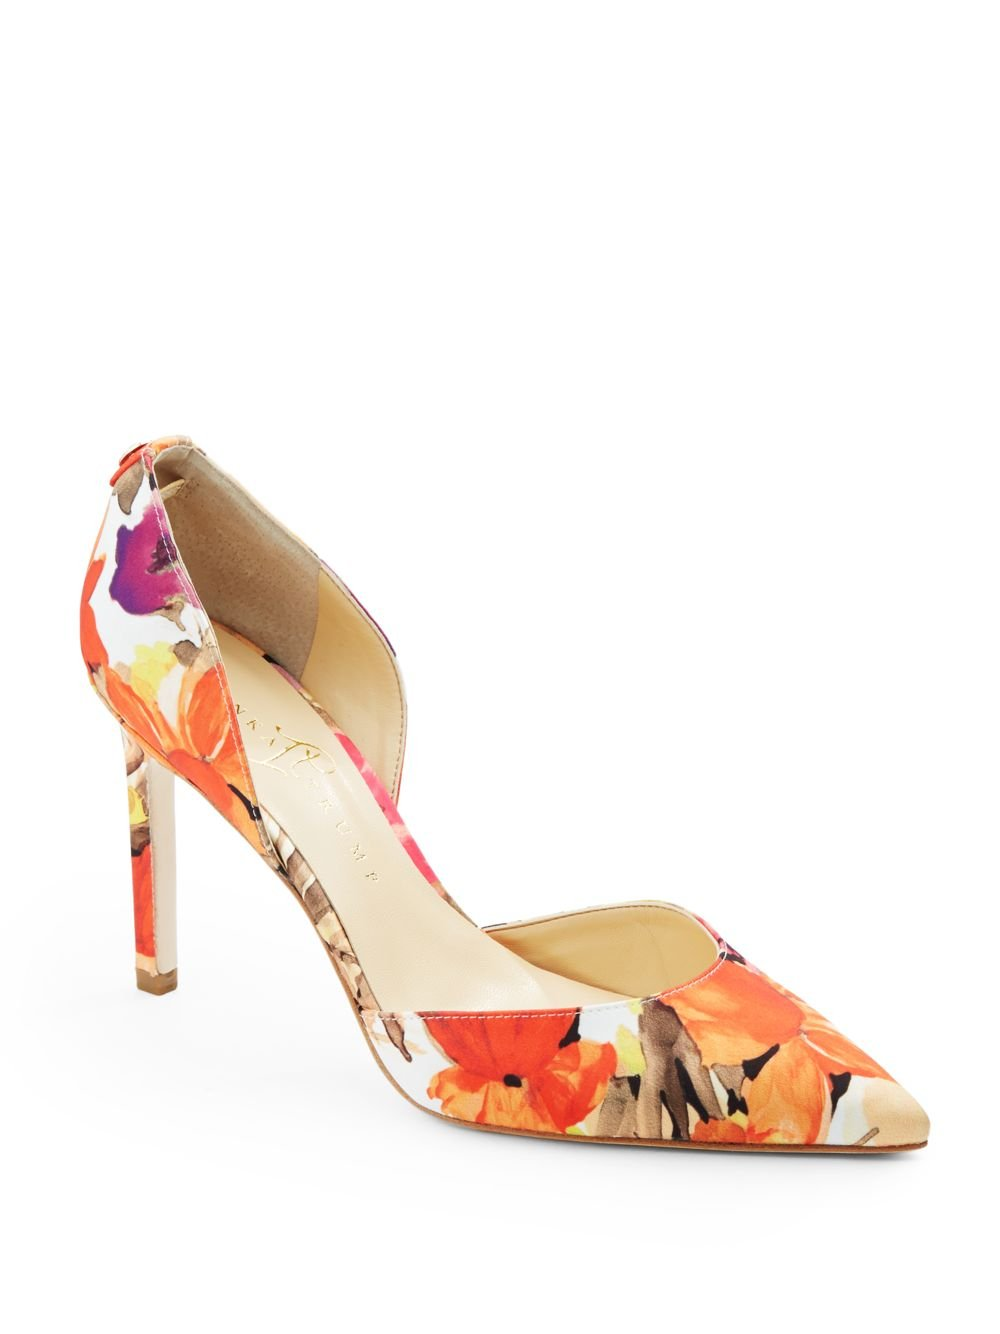 Lyst Ivanka Trump Chanise Dorsay Satin Floral Pumps In